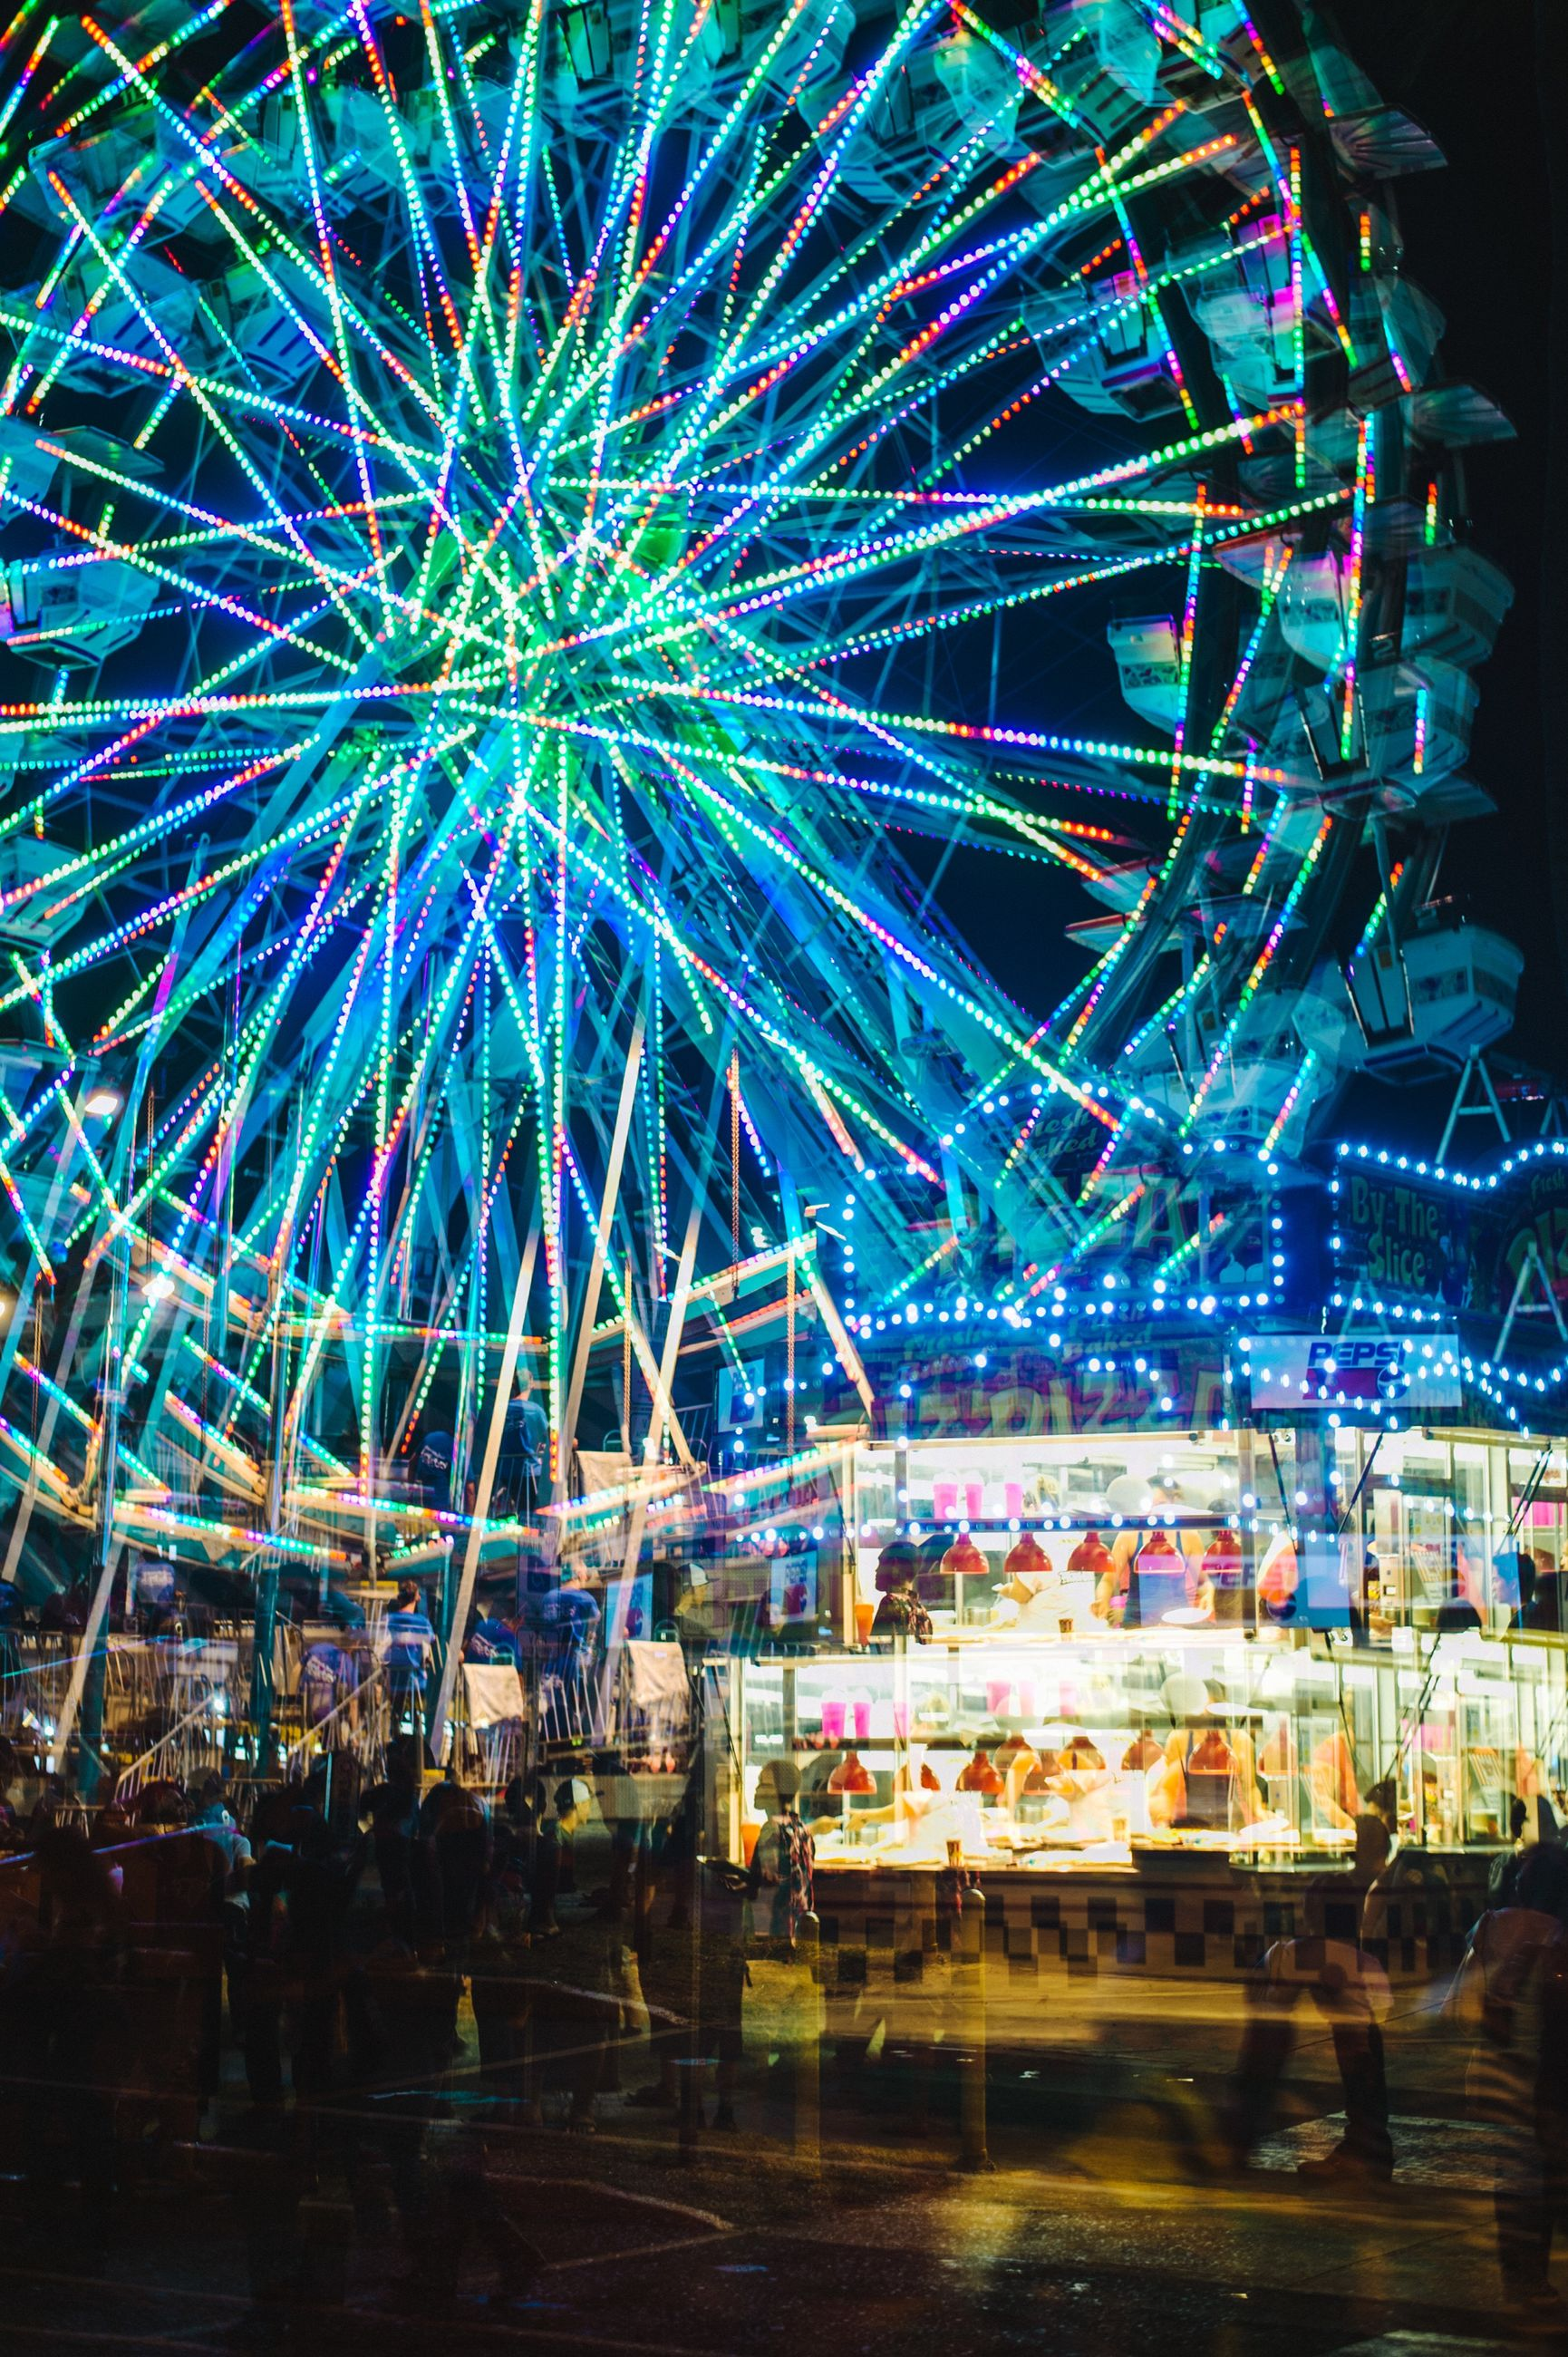 illuminated, night, arts culture and entertainment, amusement park, amusement park ride, long exposure, motion, built structure, ferris wheel, architecture, blurred motion, firework display, celebration, multi colored, building exterior, glowing, lighting equipment, low angle view, city, incidental people